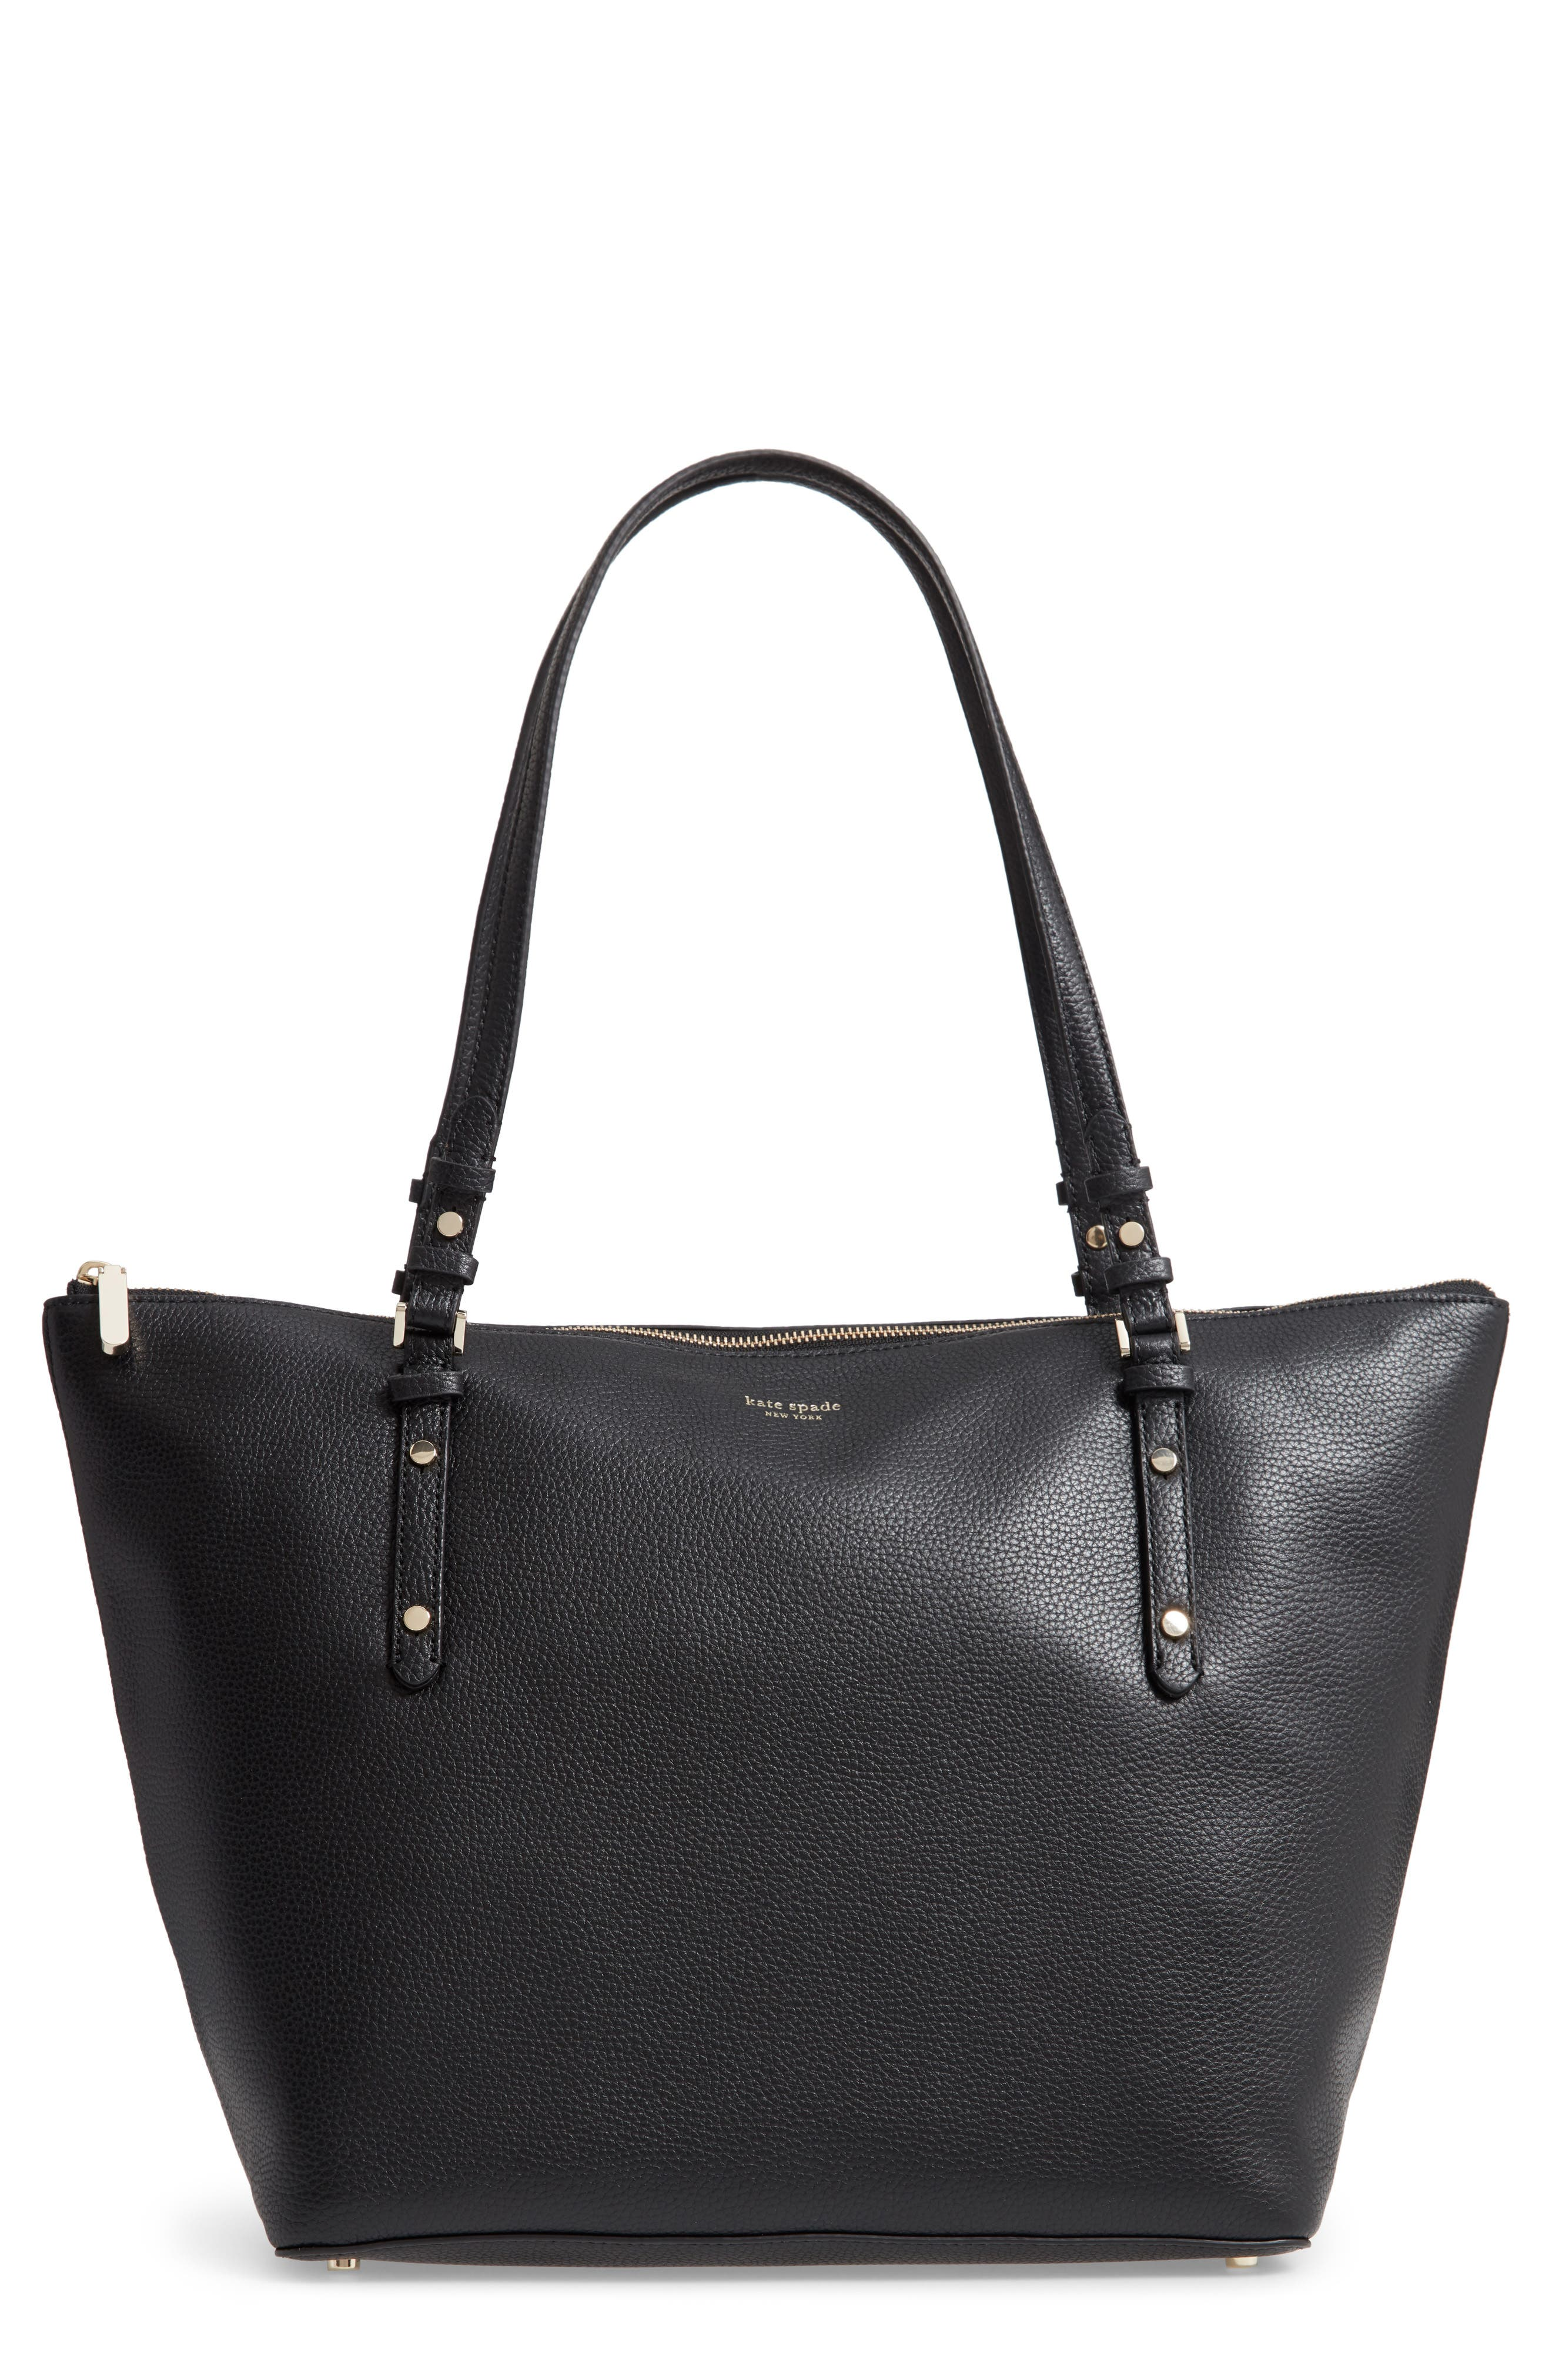 KATE SPADE NEW YORK,                             large polly leather tote,                             Main thumbnail 1, color,                             BLACK